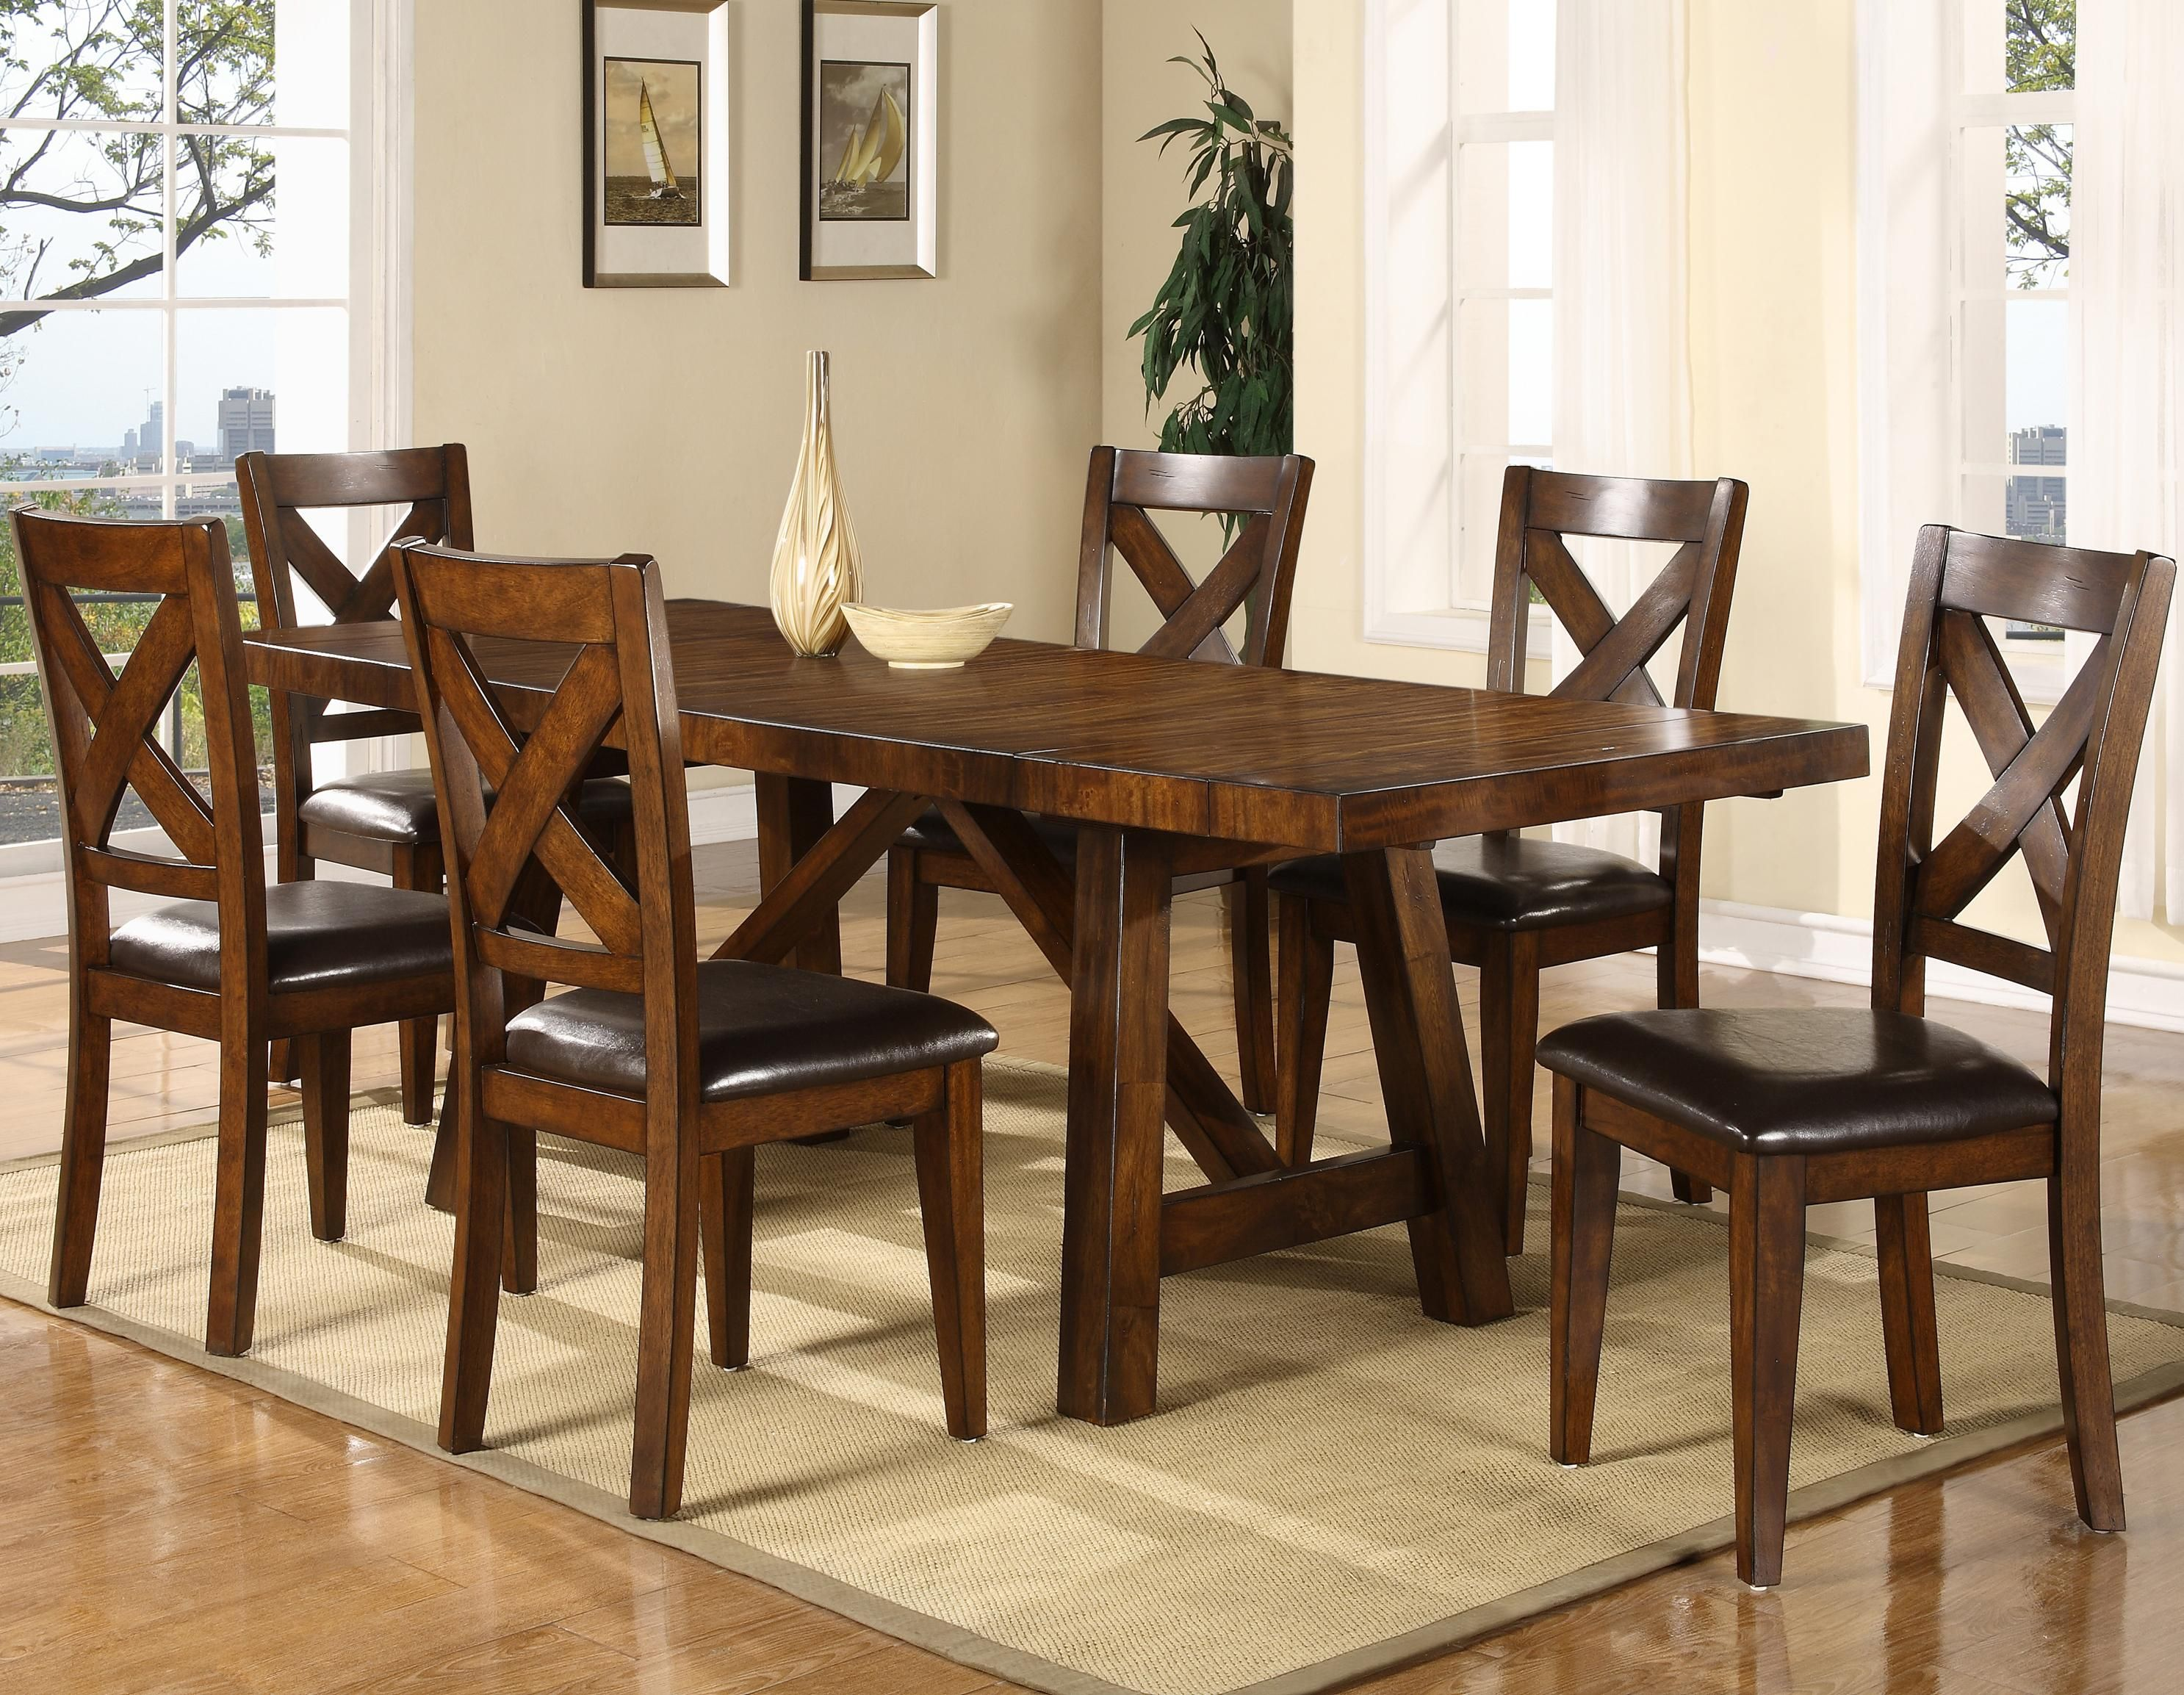 Lakeshore 5 Piece Dining Set By Holland House Dining Room Table